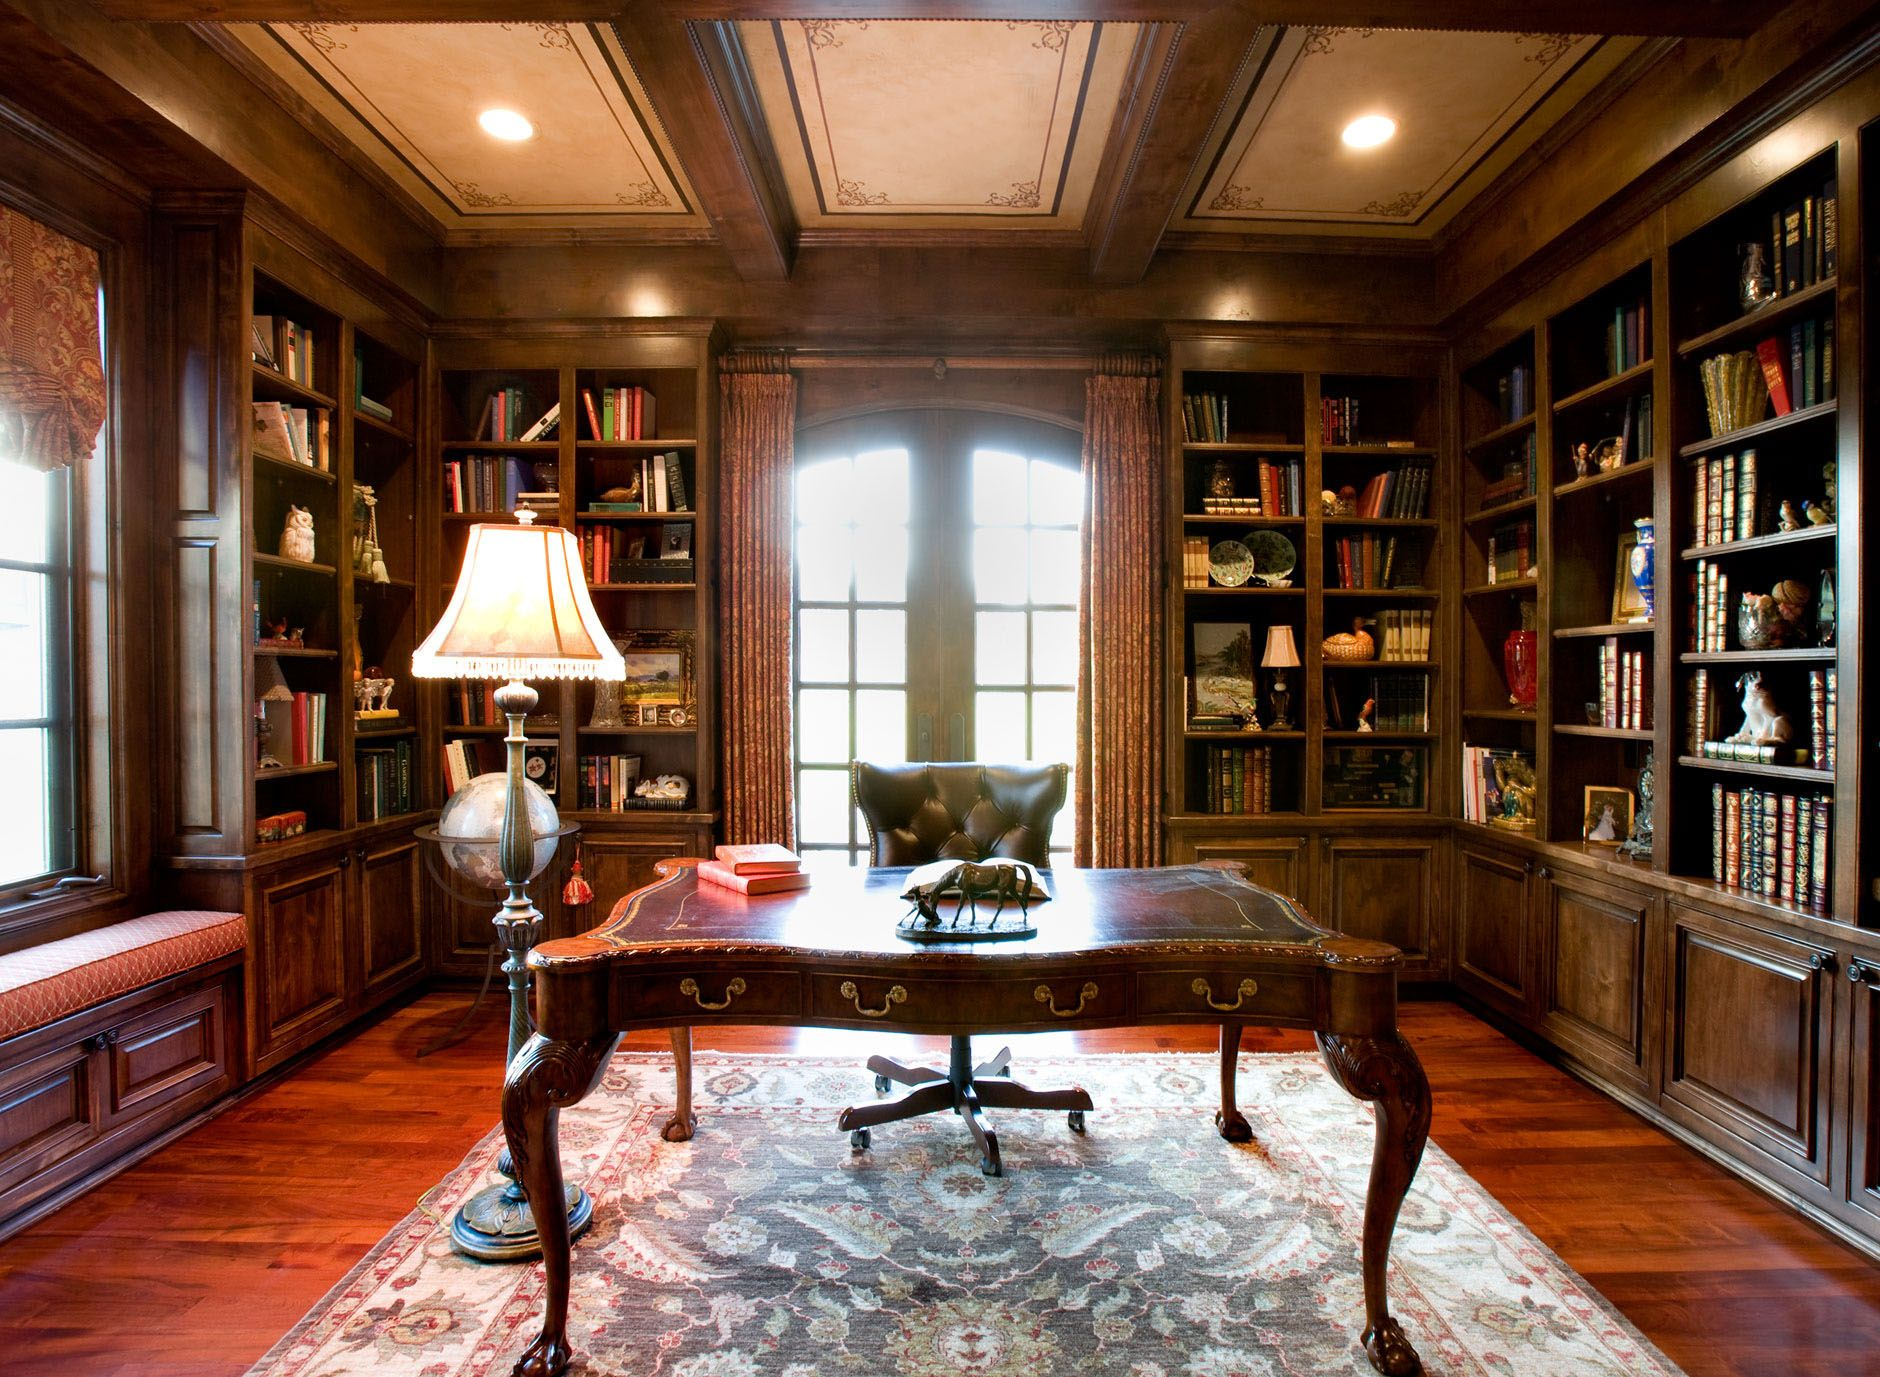 Elegant home library interior design 30 classic home for Home interior images